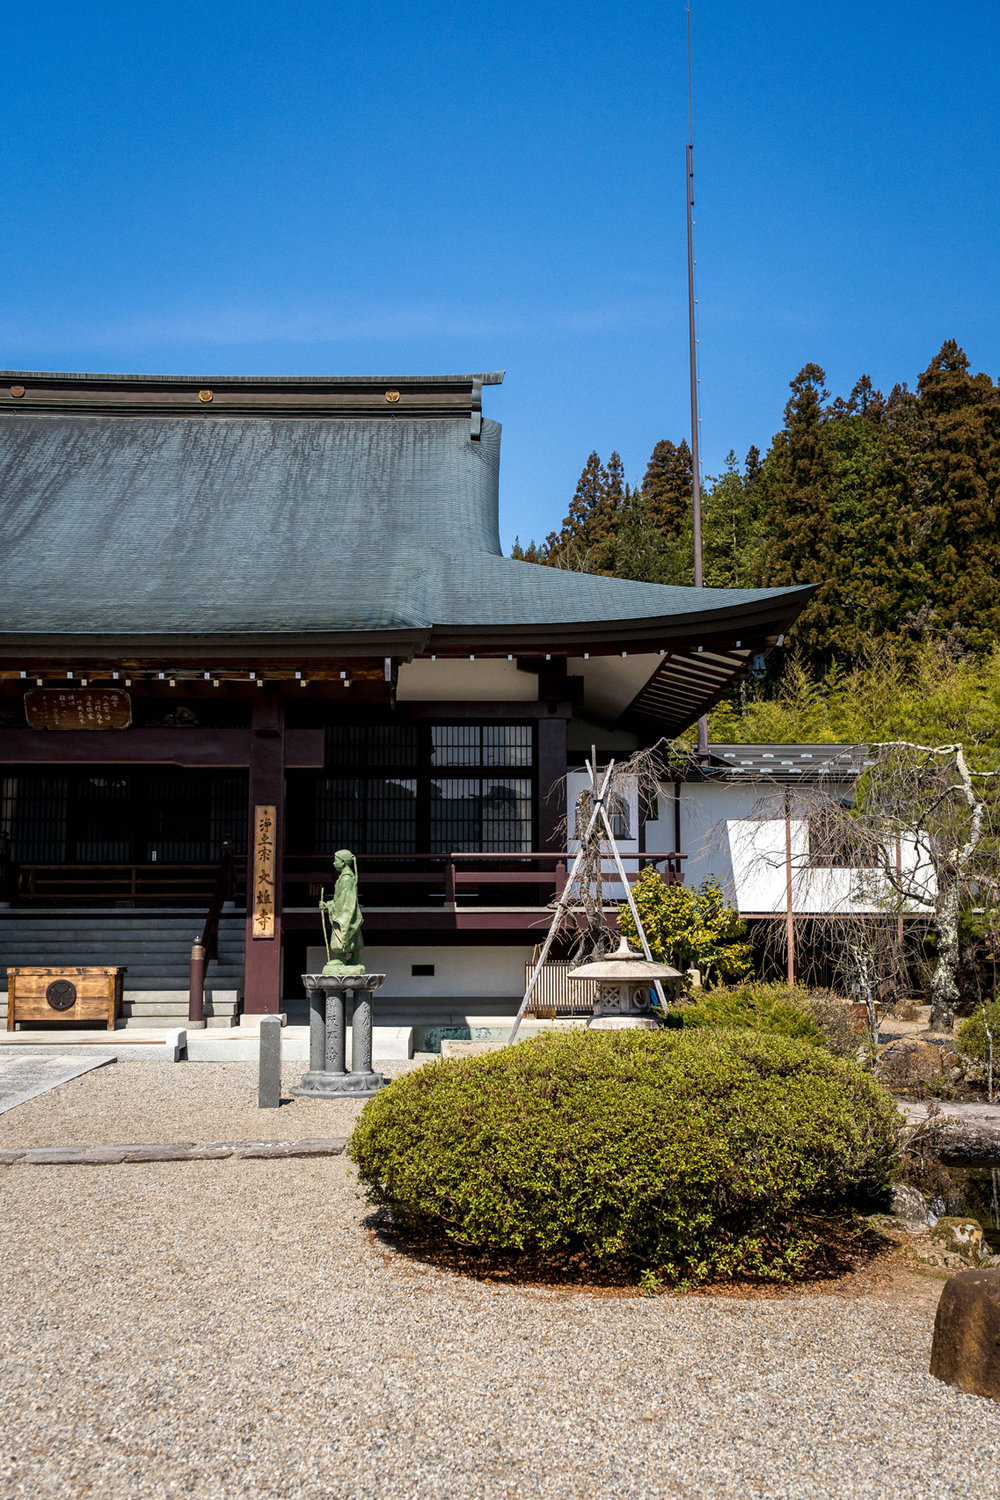 Discovering temples and shrines of Takayama